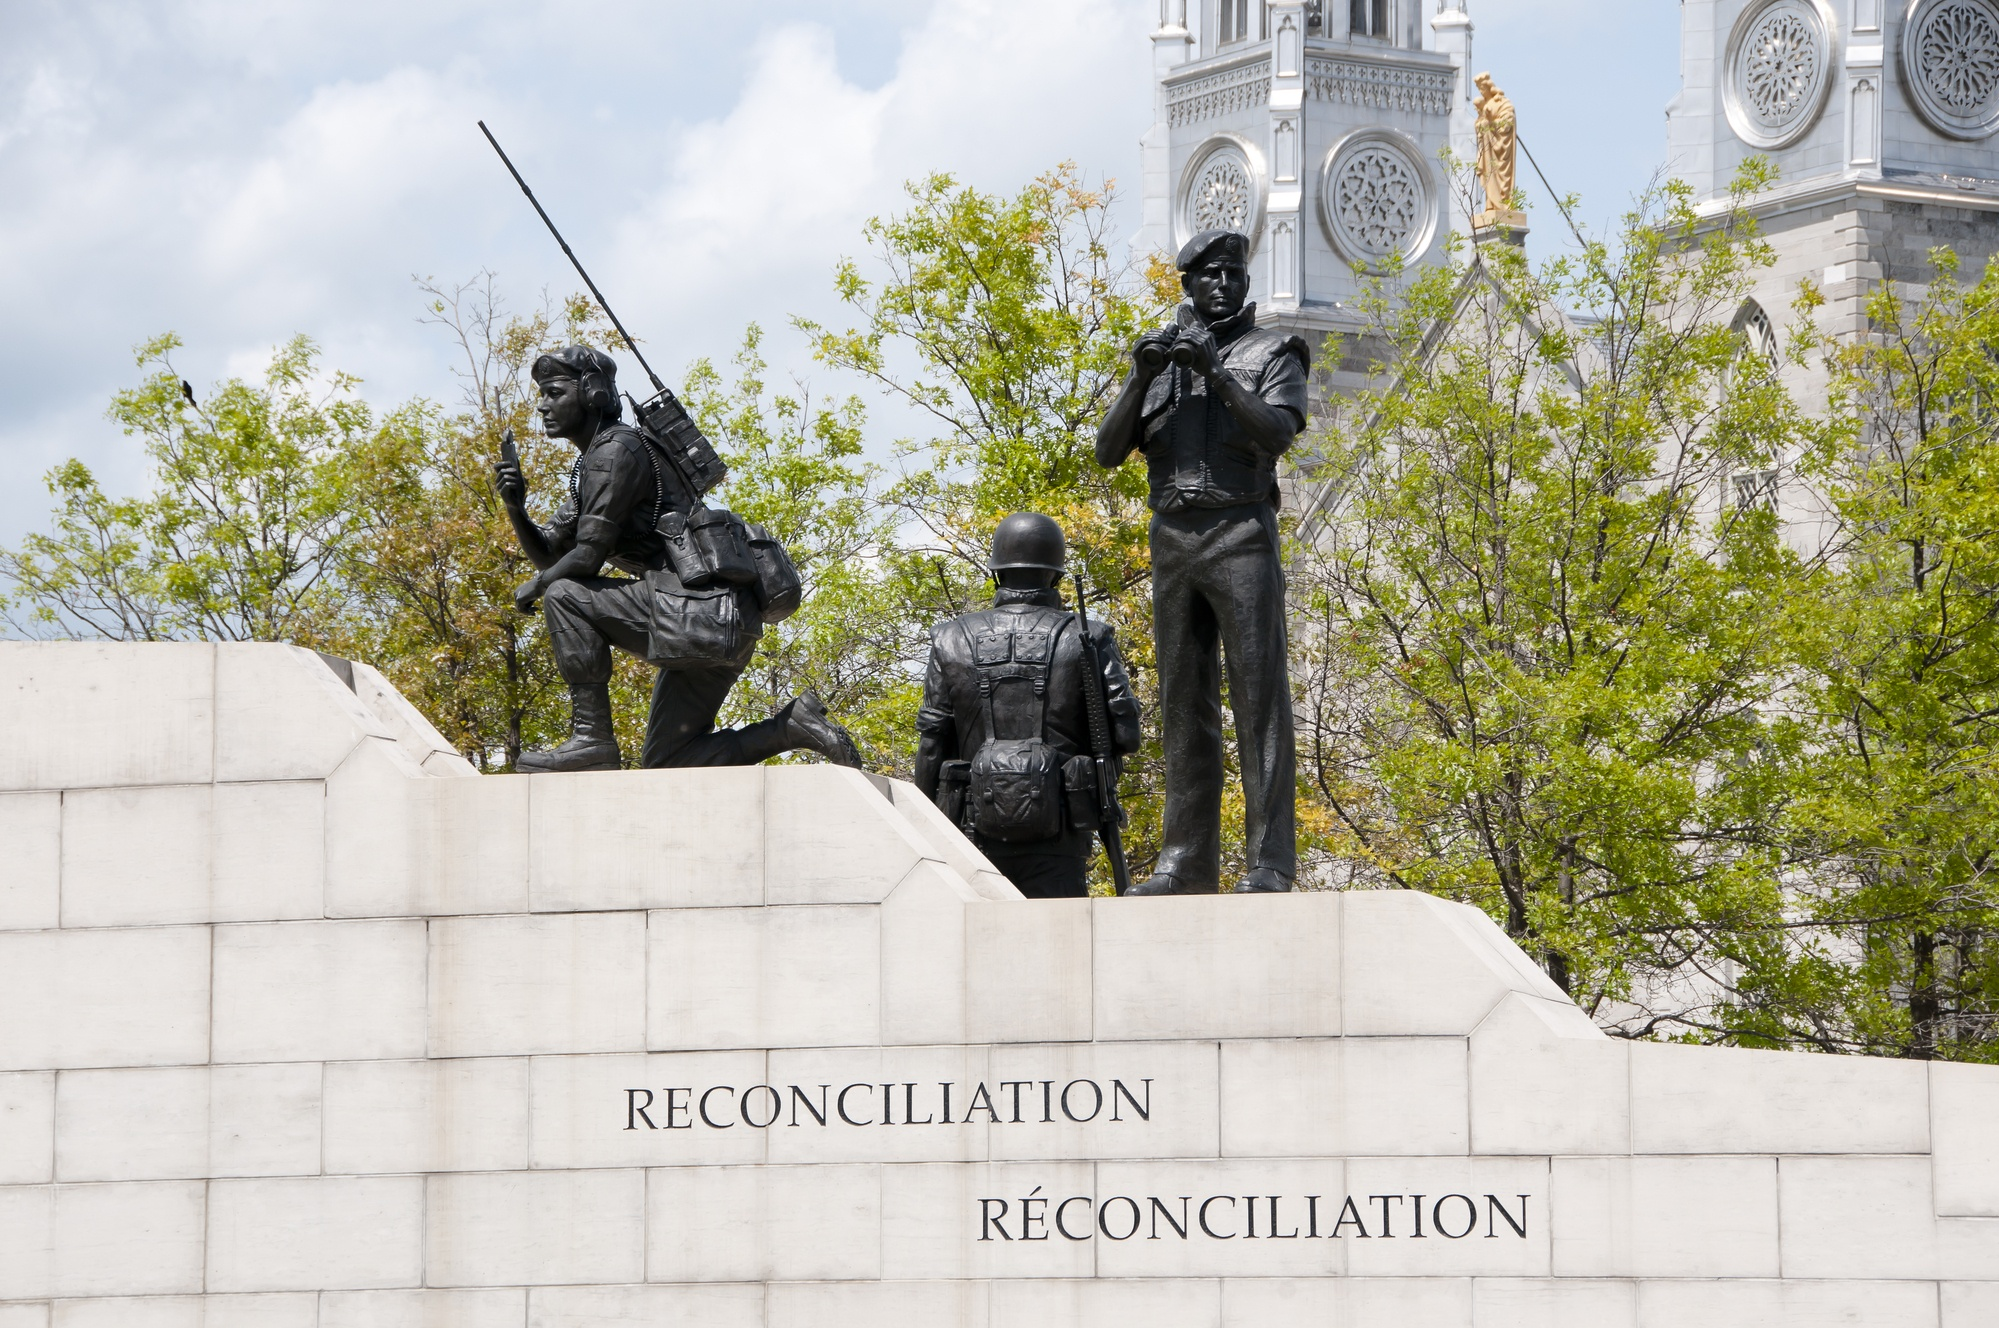 Reconciliation: The Peacekeeping Monument in Canada's Capital